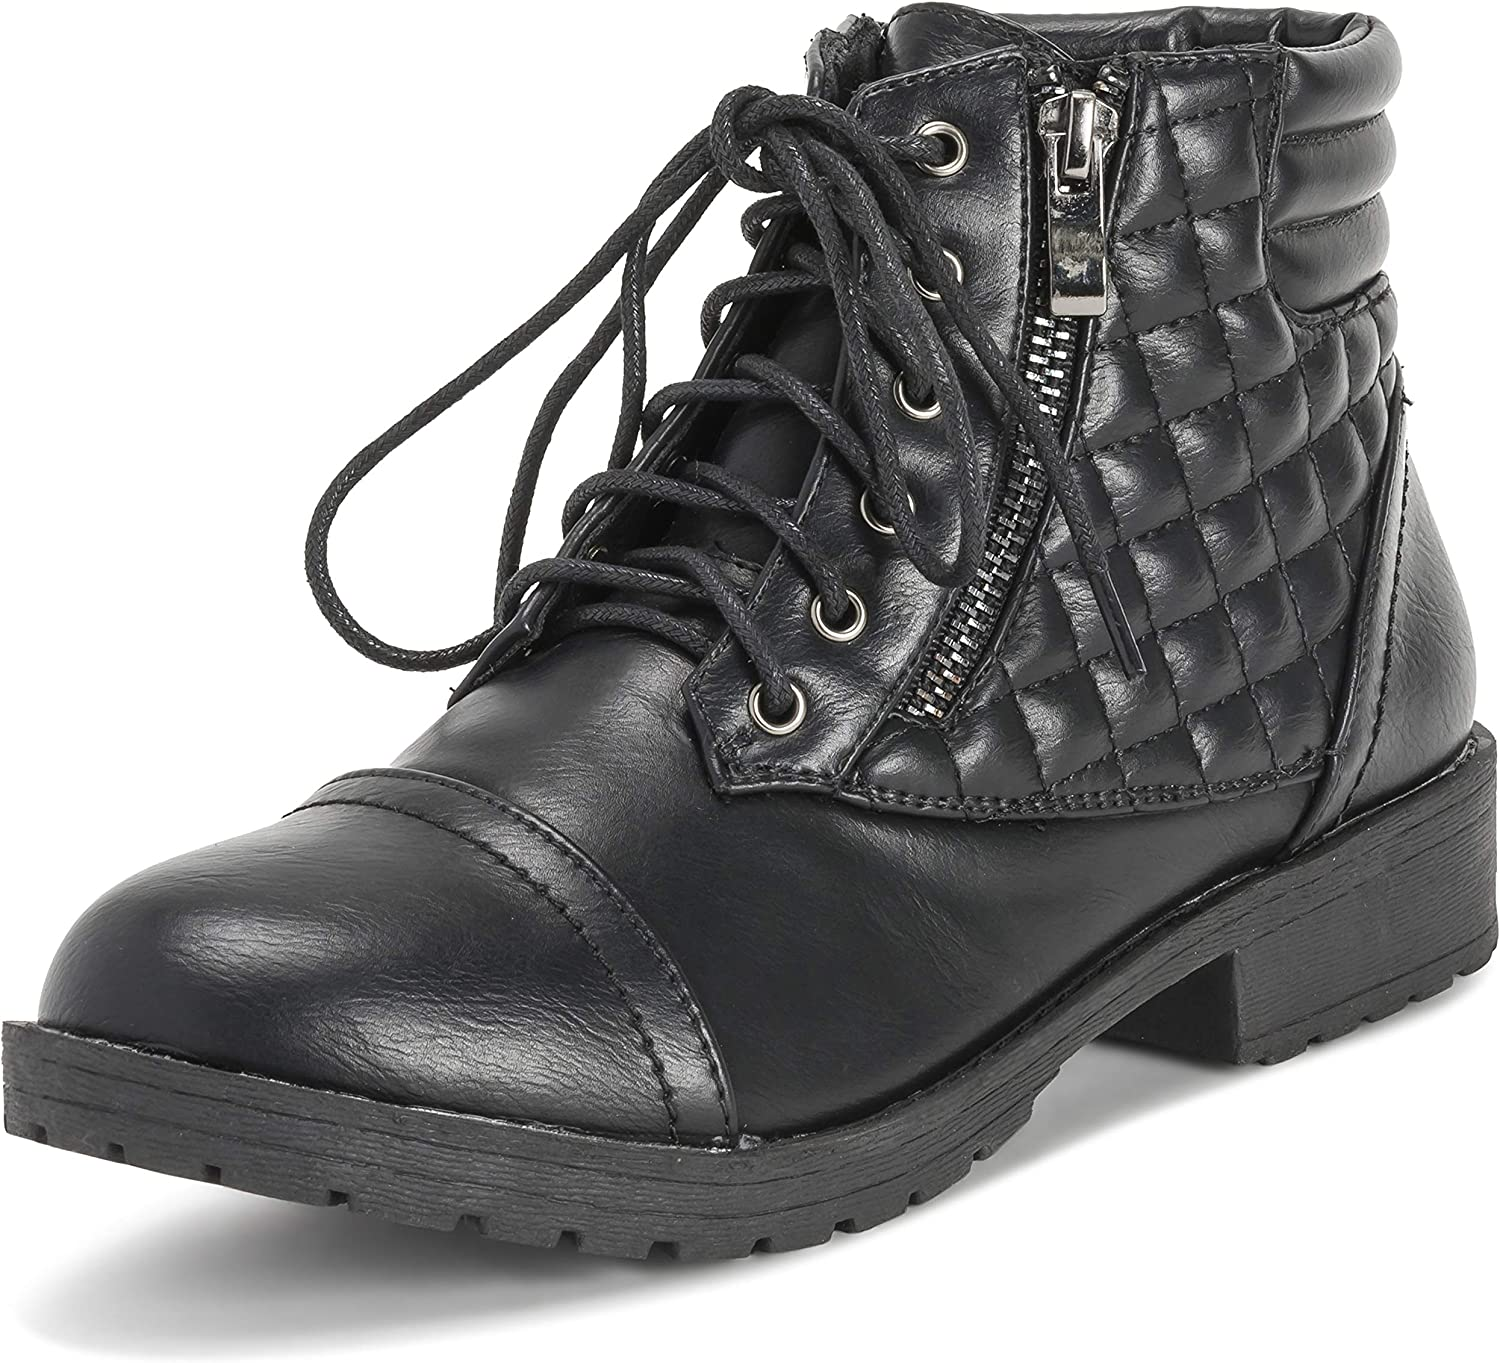 Viva shoes Womens Military Zip Army Winter Fashion Combat Ankle Boot Outside Pocket